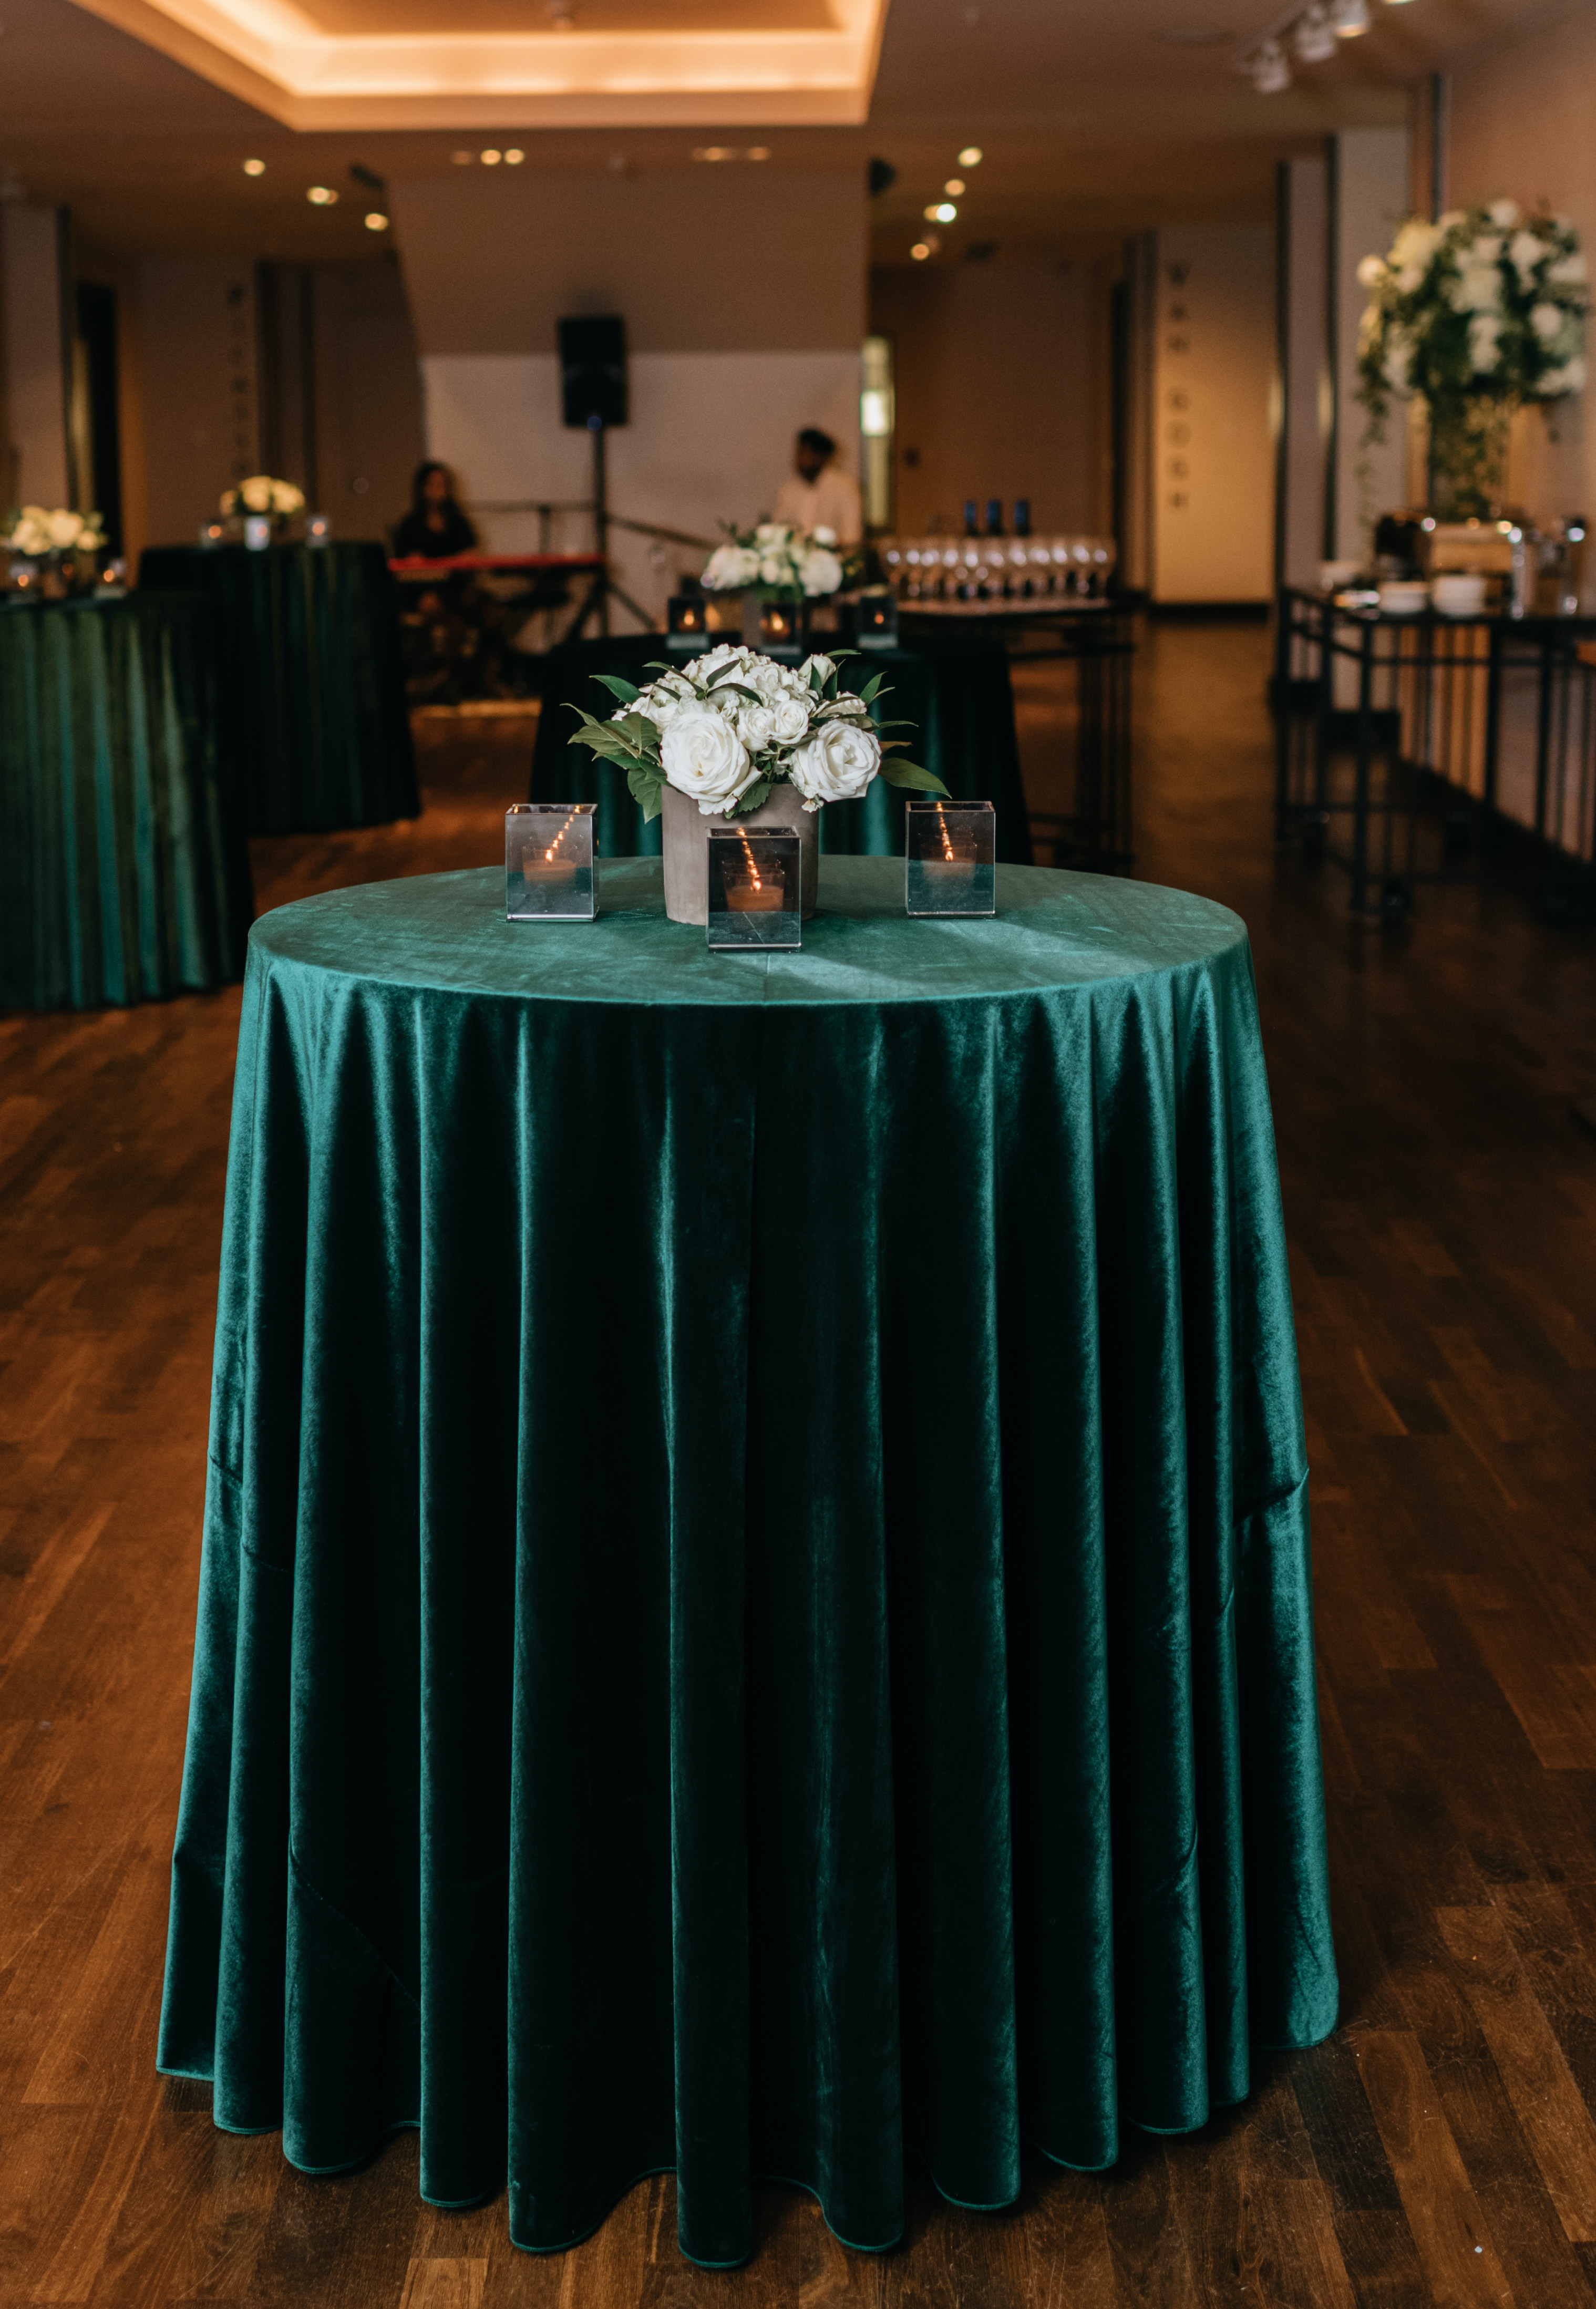 A velvety green table-cloth is draped over the cocktail table.